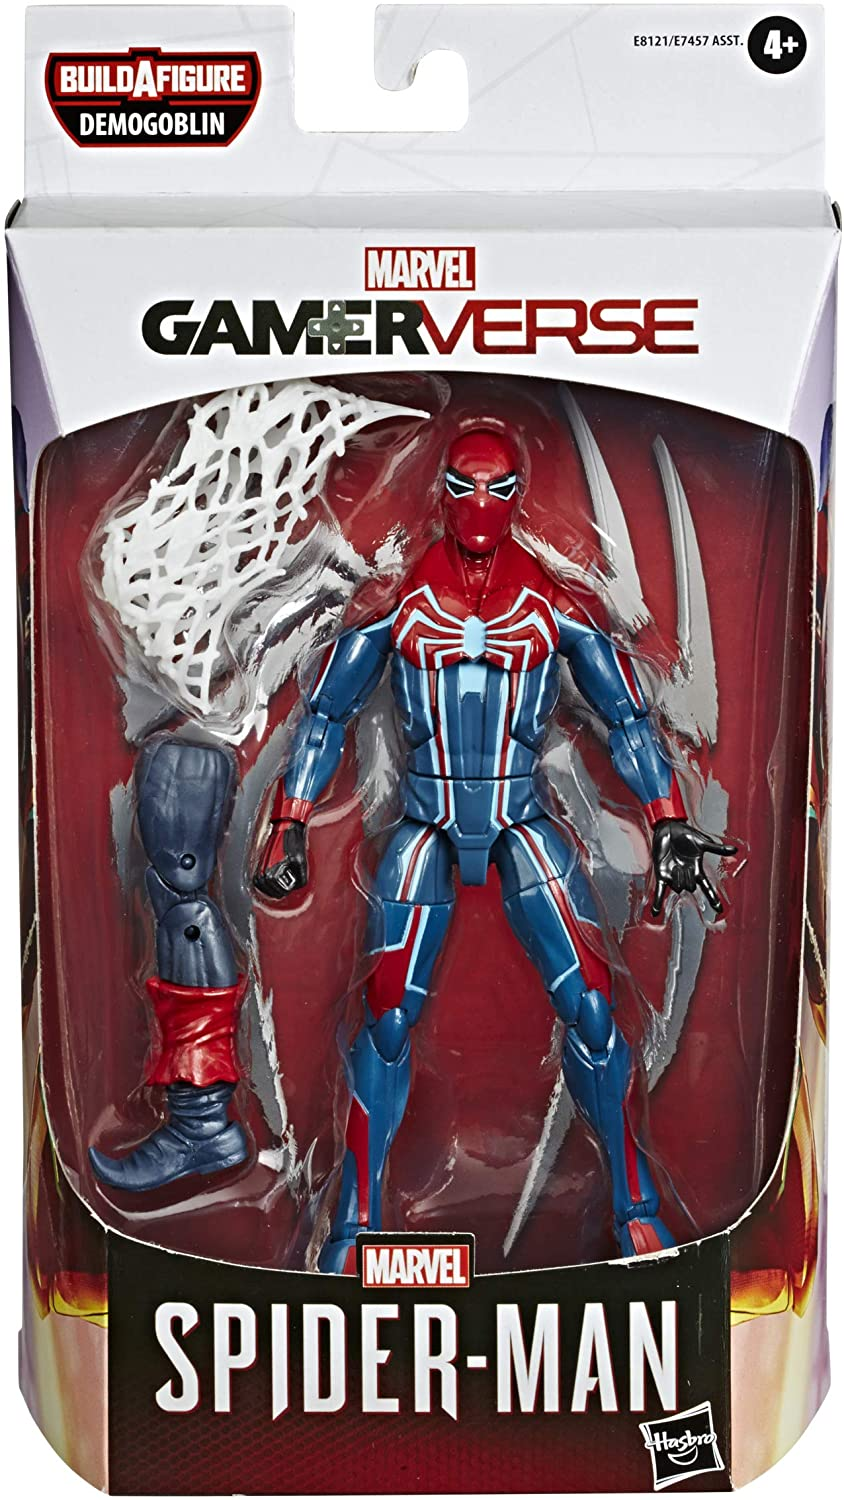 Spider-Man Action Figure Marvel leggende Tuta di velocità